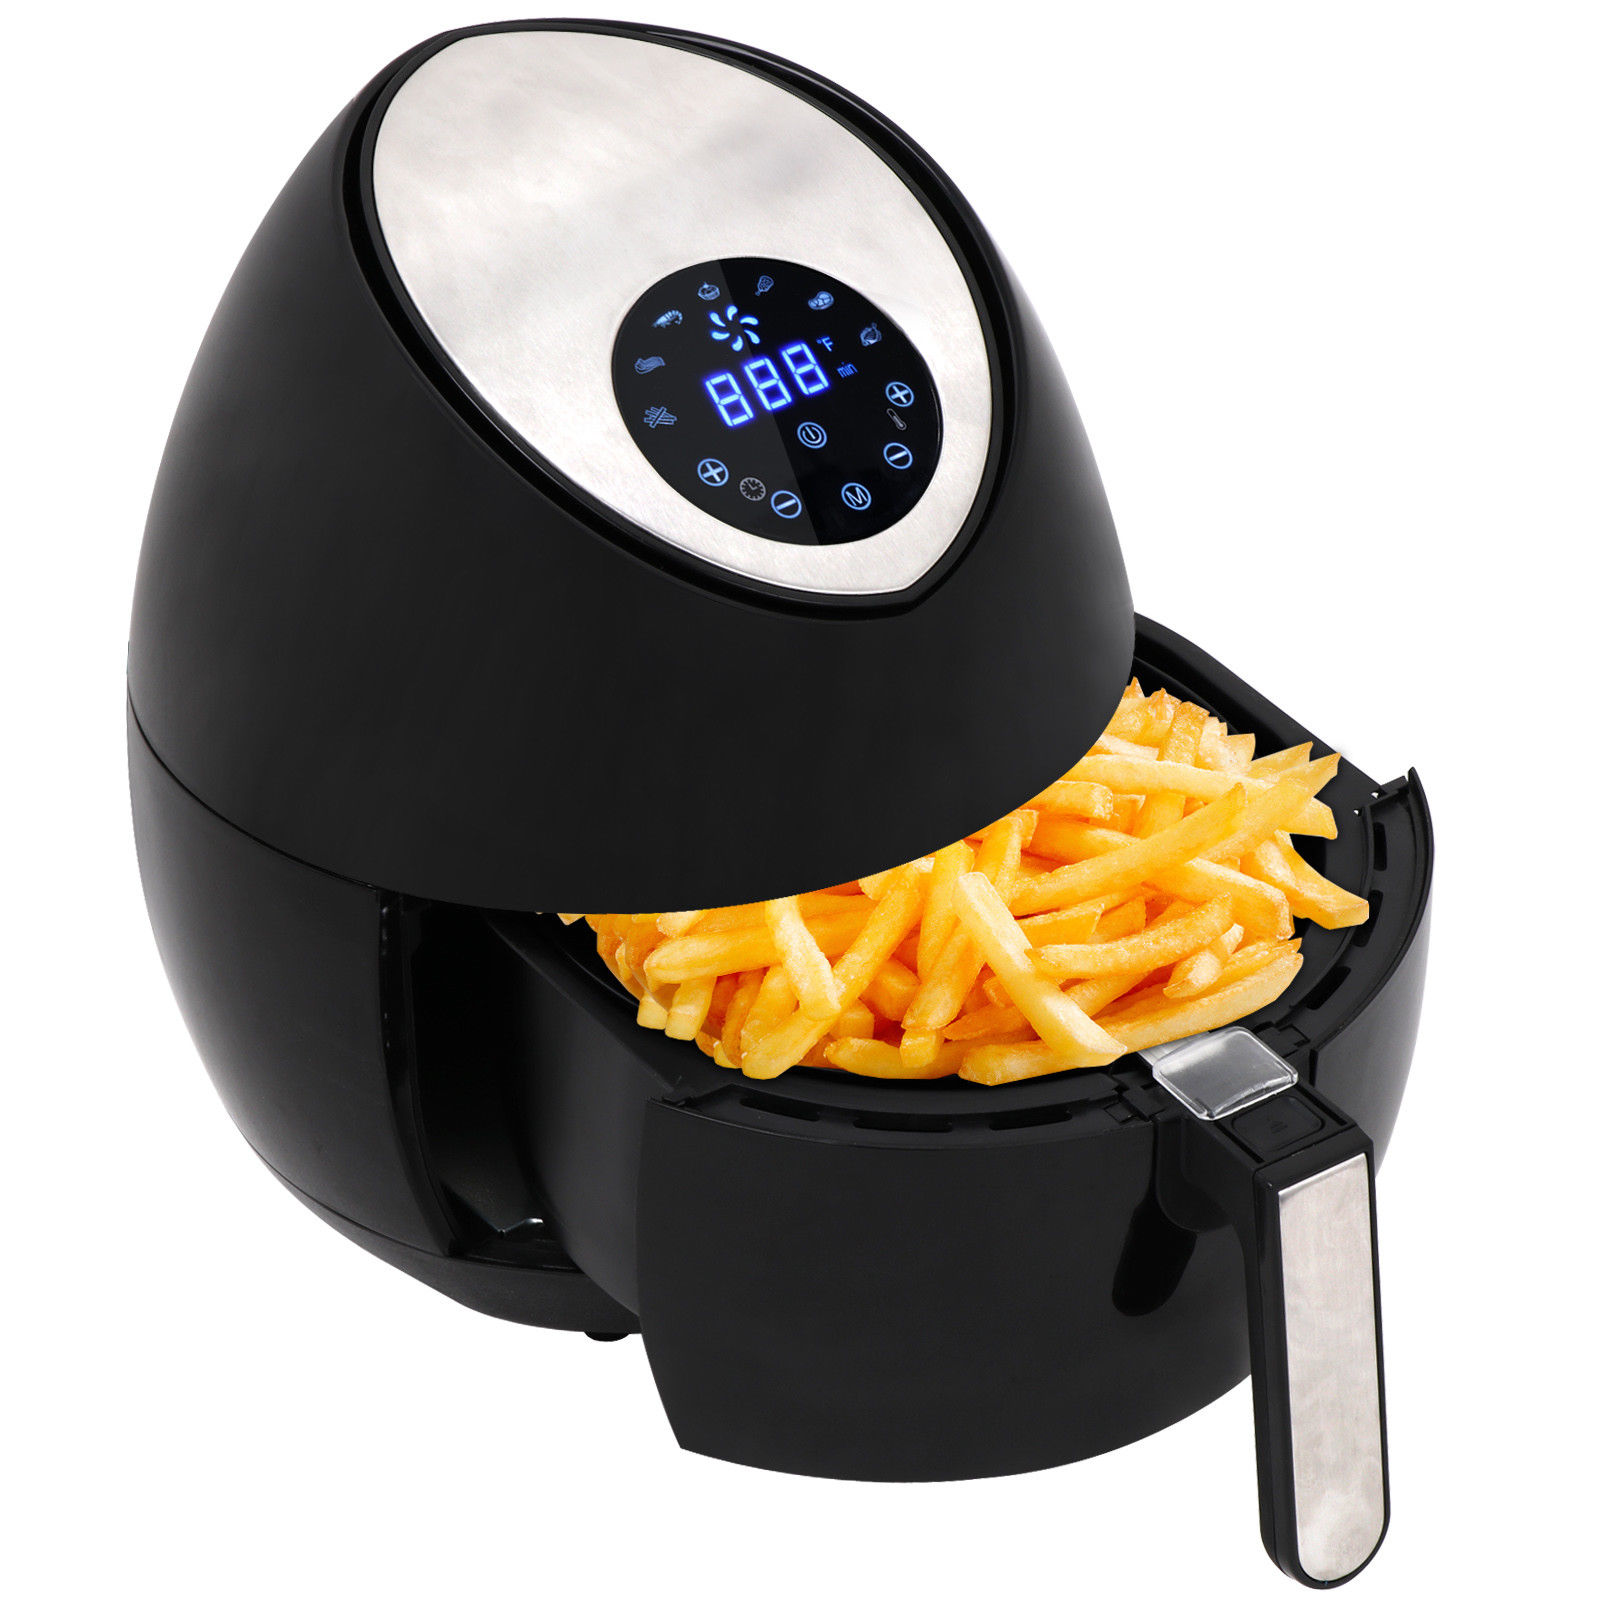 Zeny Electric LCD Air Fryer 4.2 QT w/ Touch Screen & Removable Basket 1500W - Black